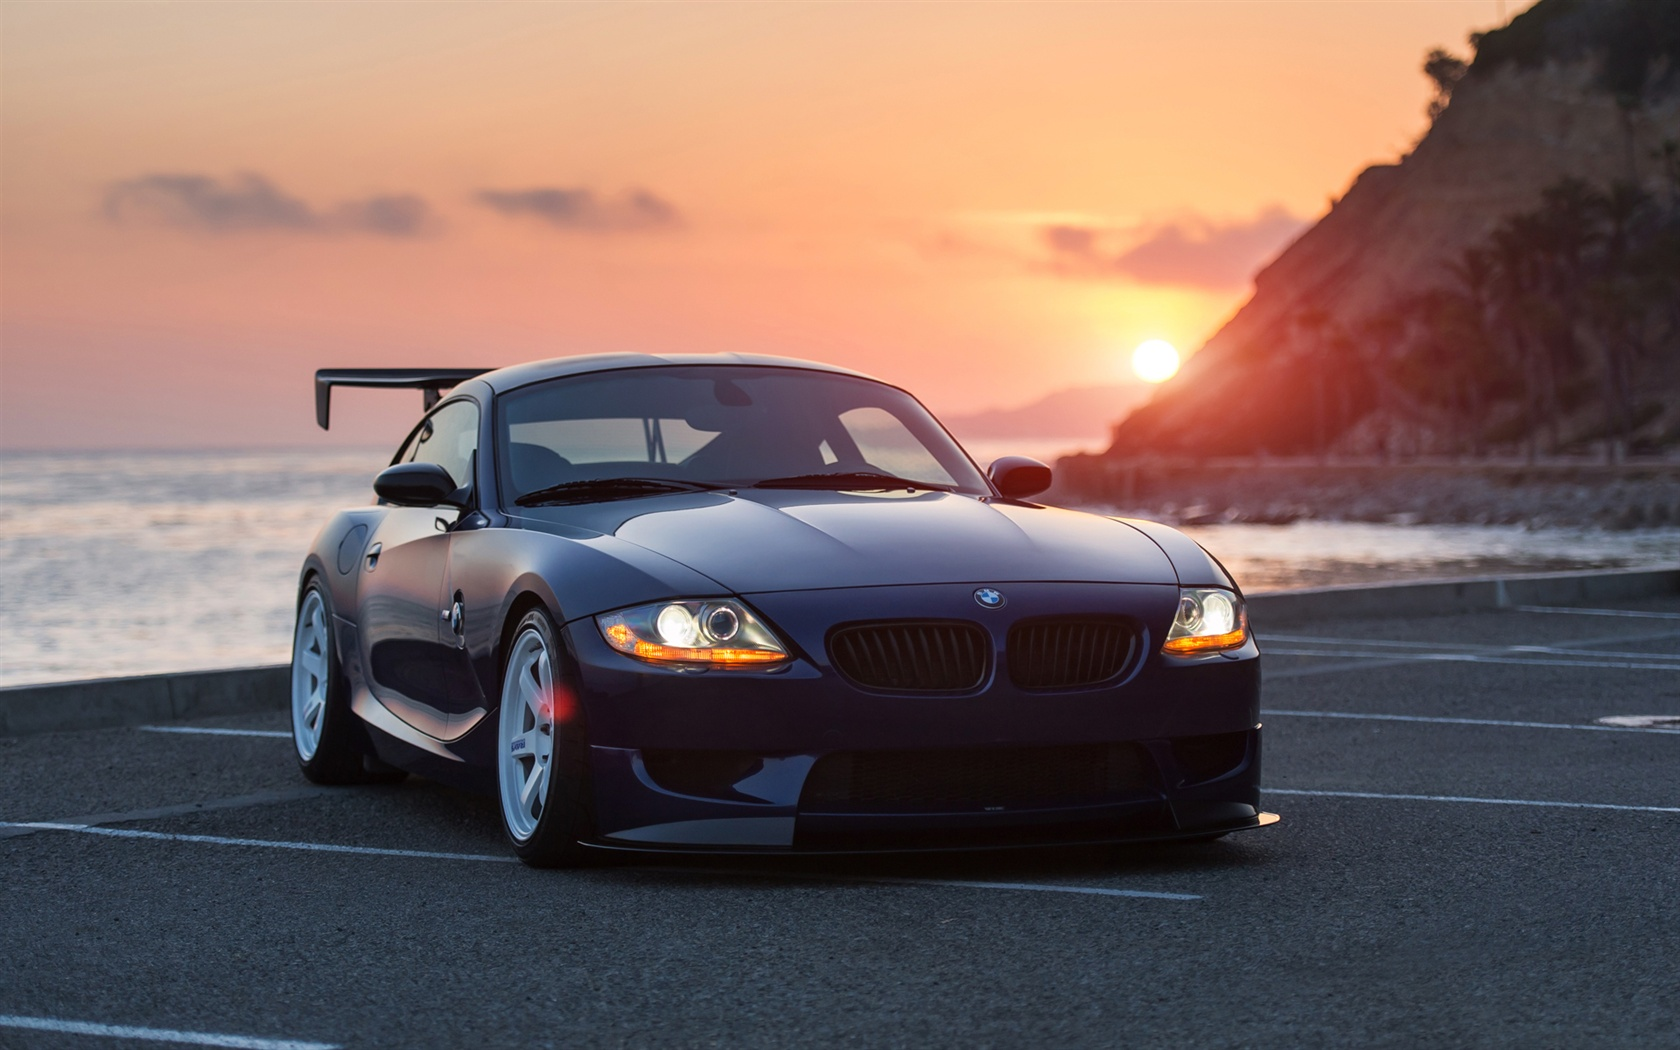 Wallpaper Bmw Z4 Black Car At Sunset 1920x1200 Hd Picture